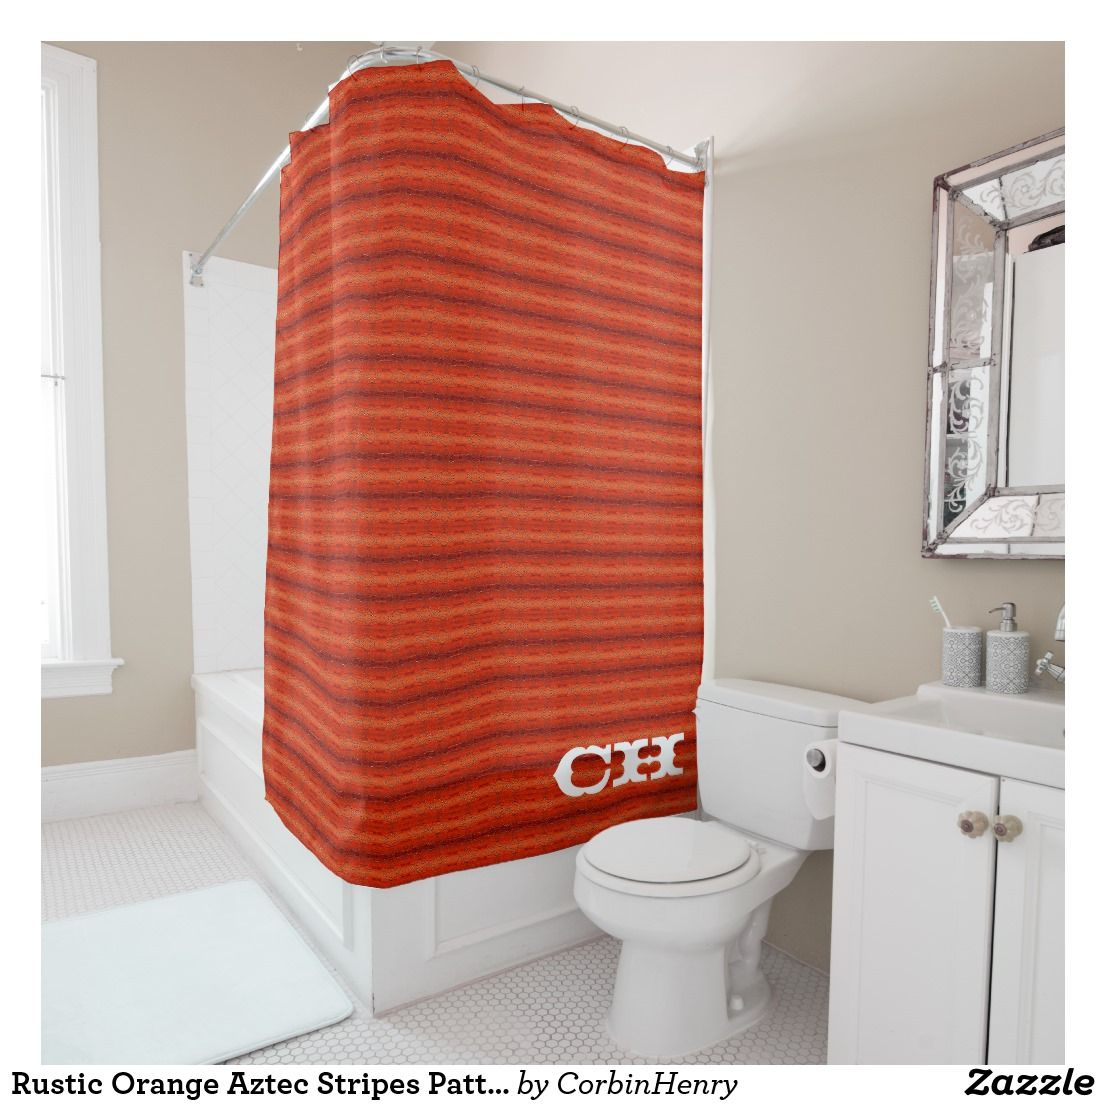 Rustic Orange Aztec Stripes Pattern Monogram Shower Curtain By Corbin Henry  With Western Style Letter Font